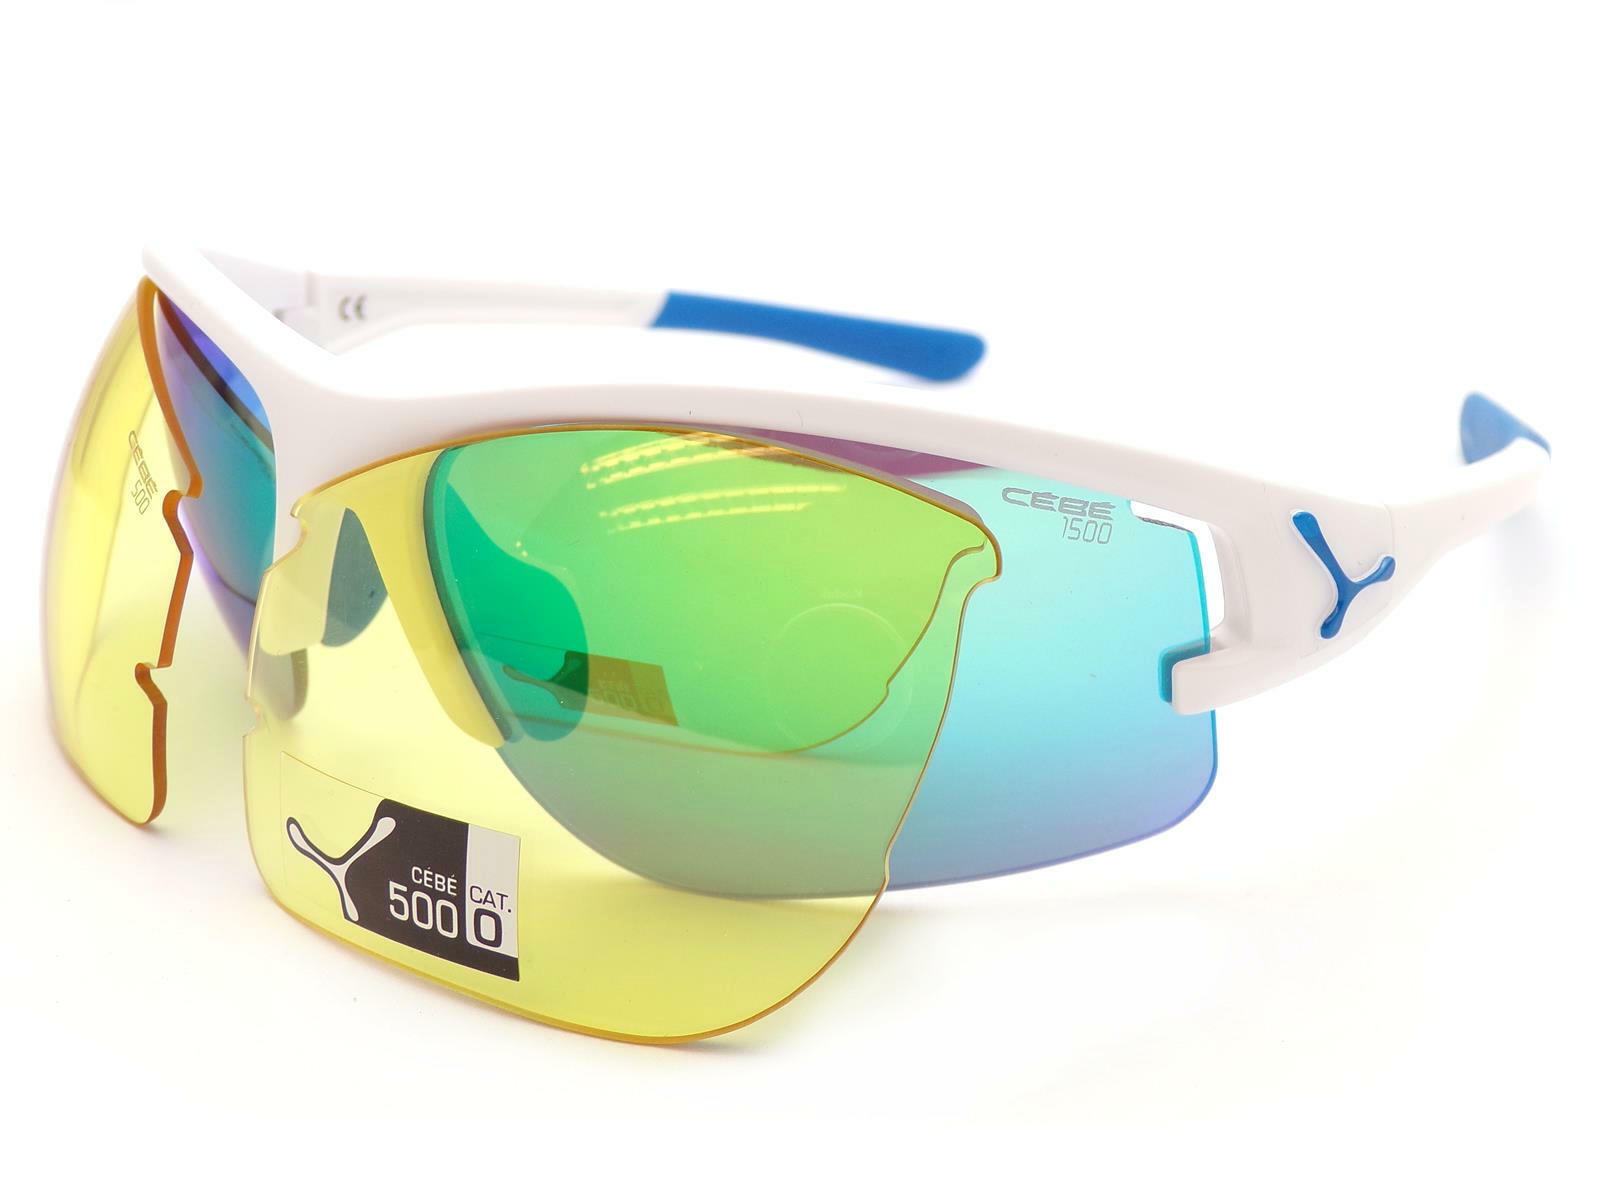 CEBE - ACROSS  Two Lens Sports Sunglasses White   Grey bluee Flash Mirror + Yellow  factory outlet online discount sale